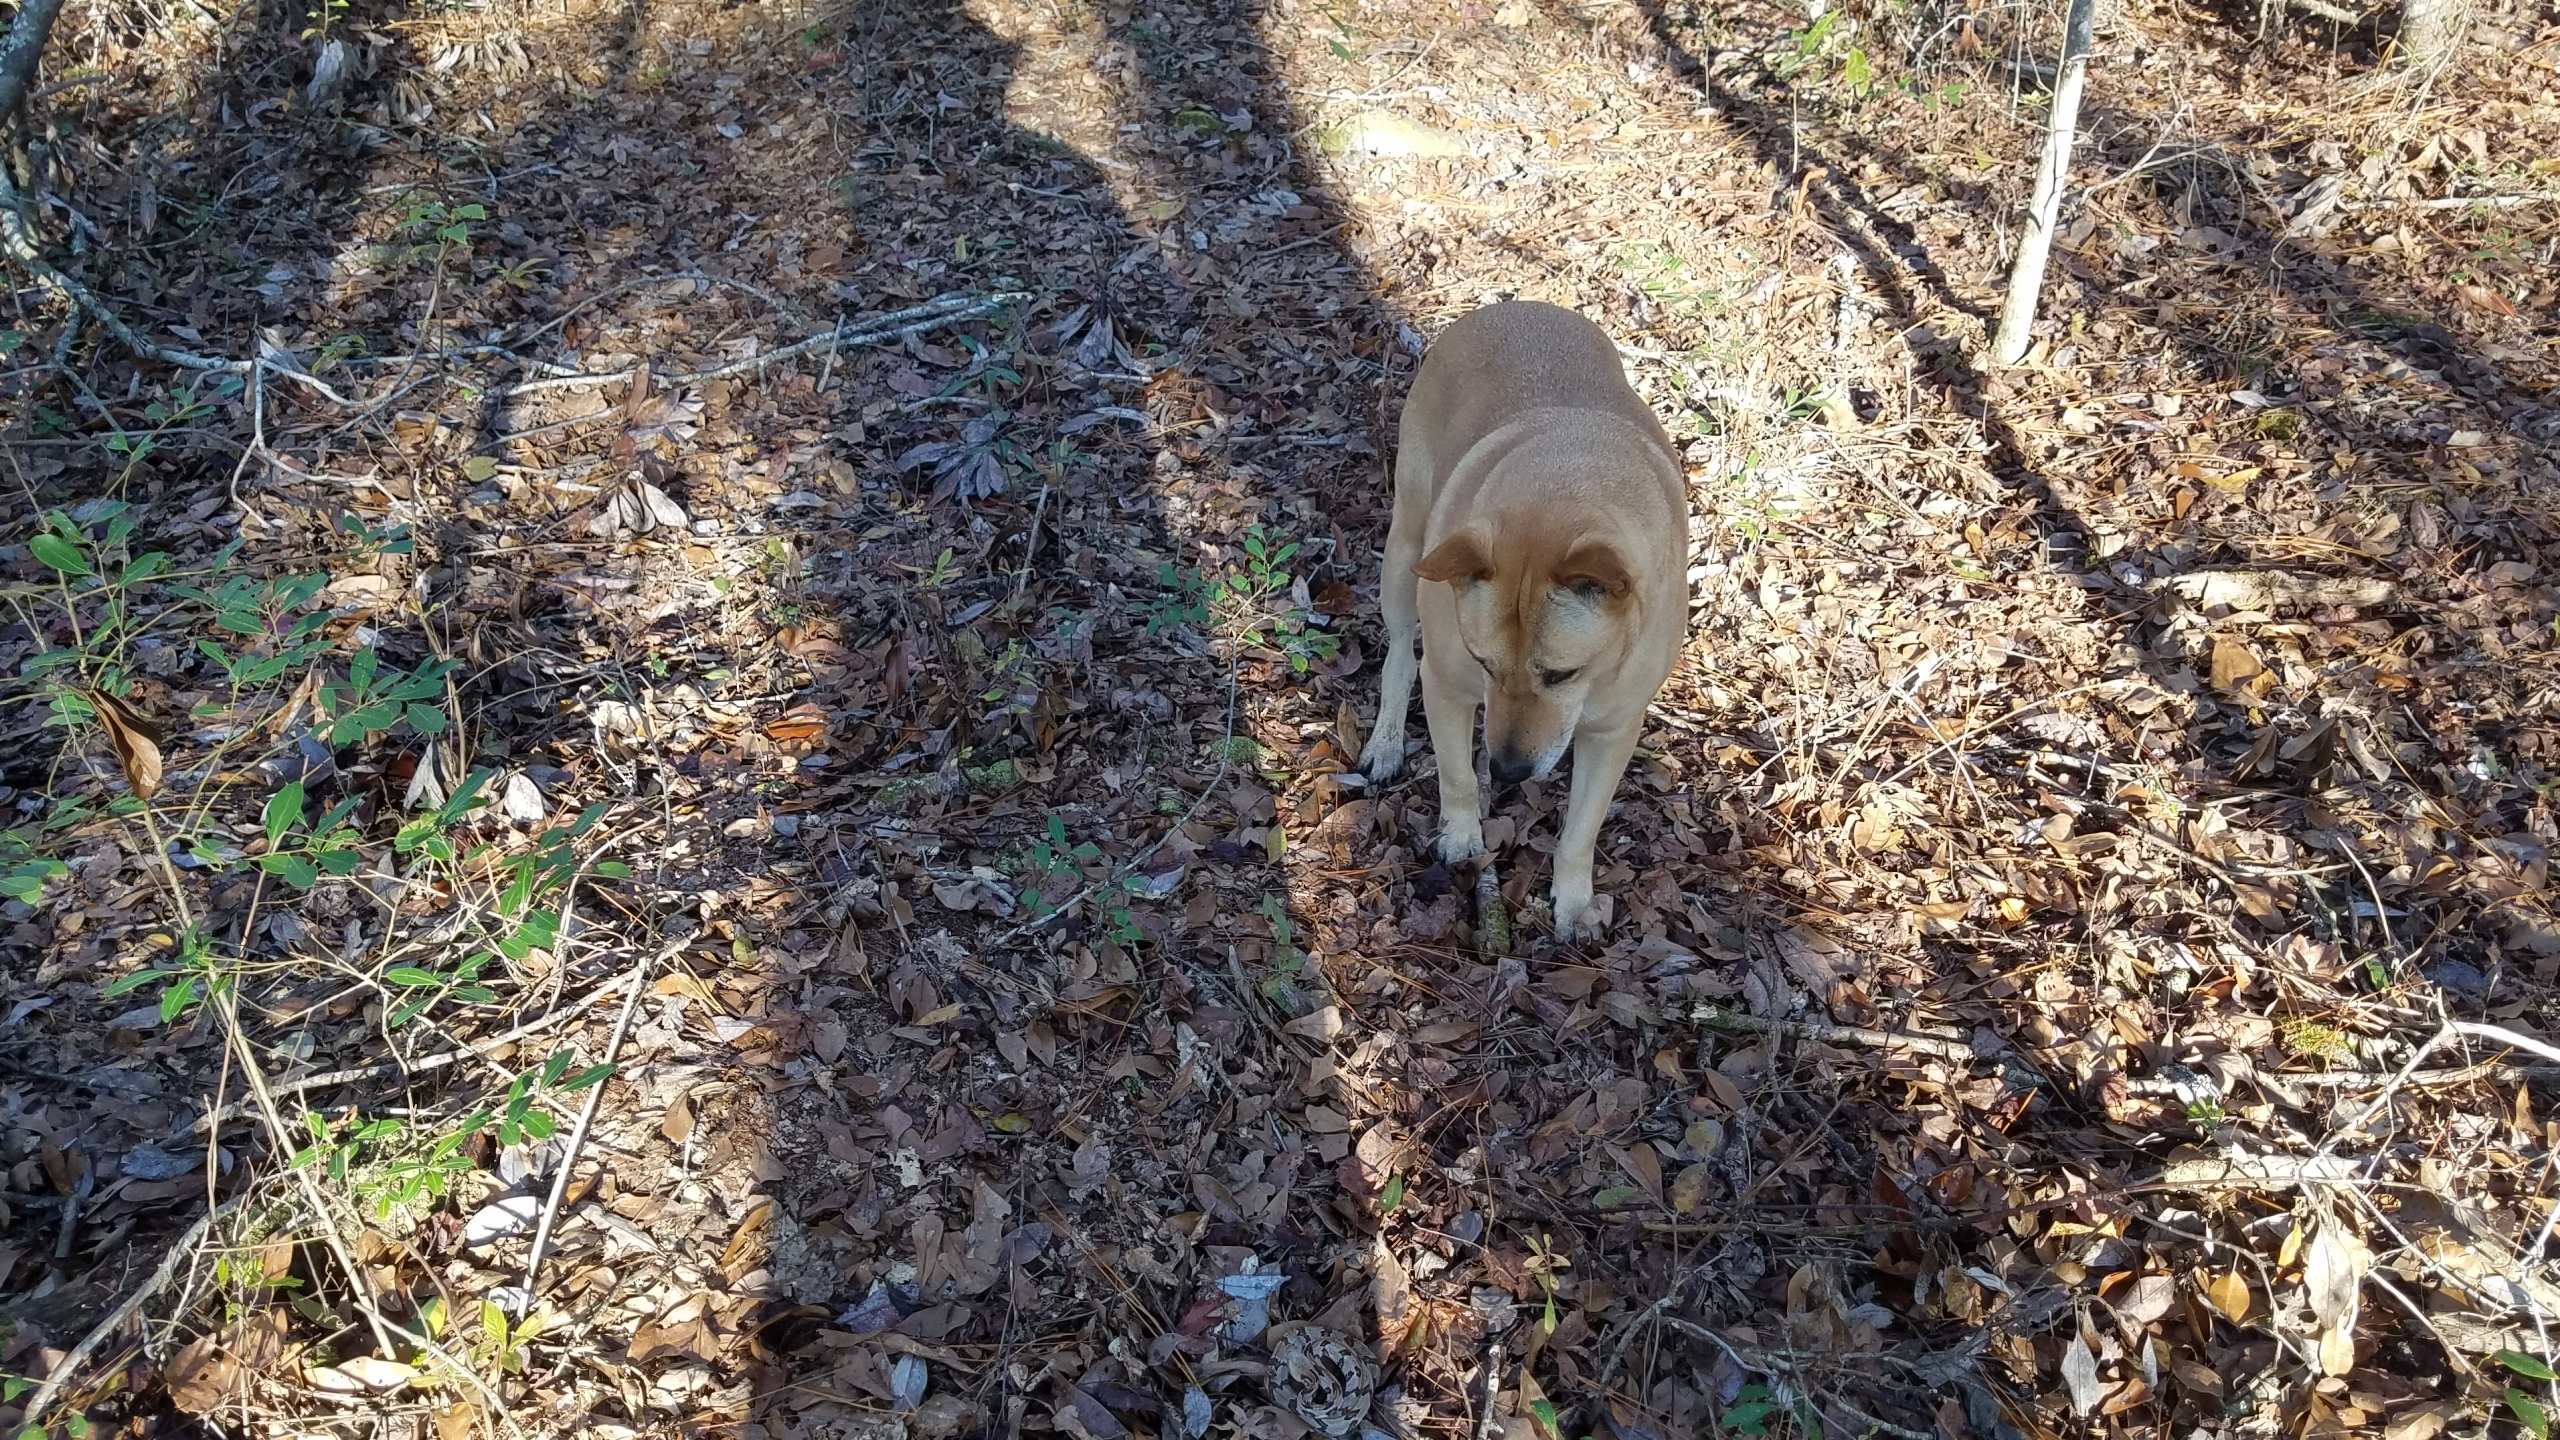 2560x1440 No, Yellow Dog, Snake, in Snake of the day, by John S. Quarterman, for OkraParadiseFarms.com, 22 December 2017